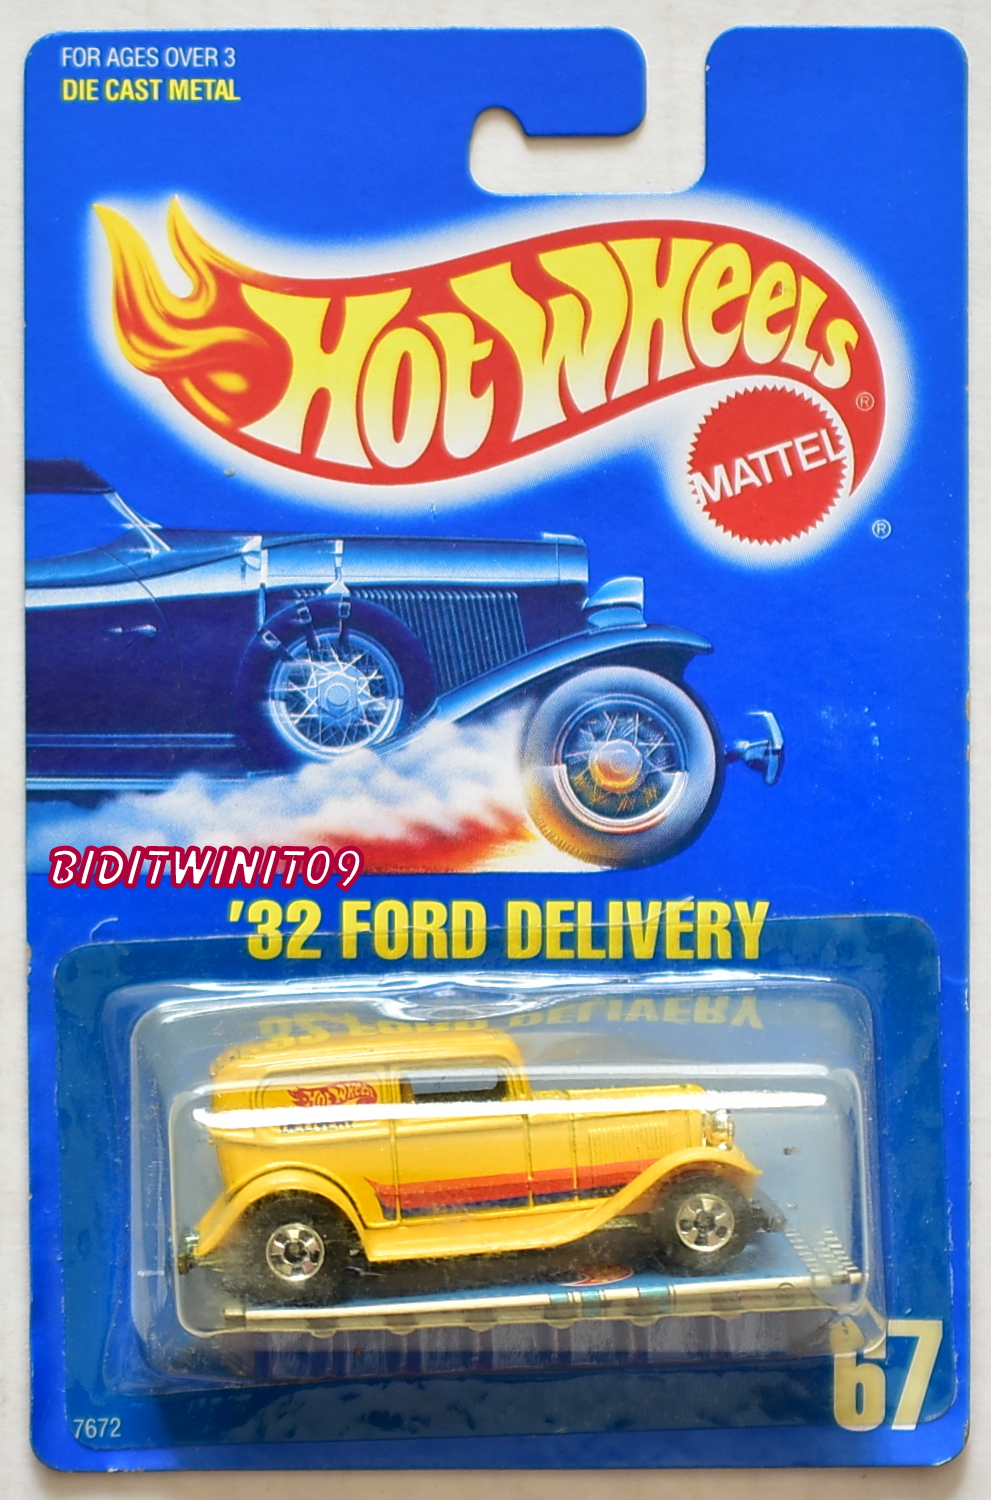 HOT WHEELS 1989 BLUE CARD '32 FORD DELIVERY